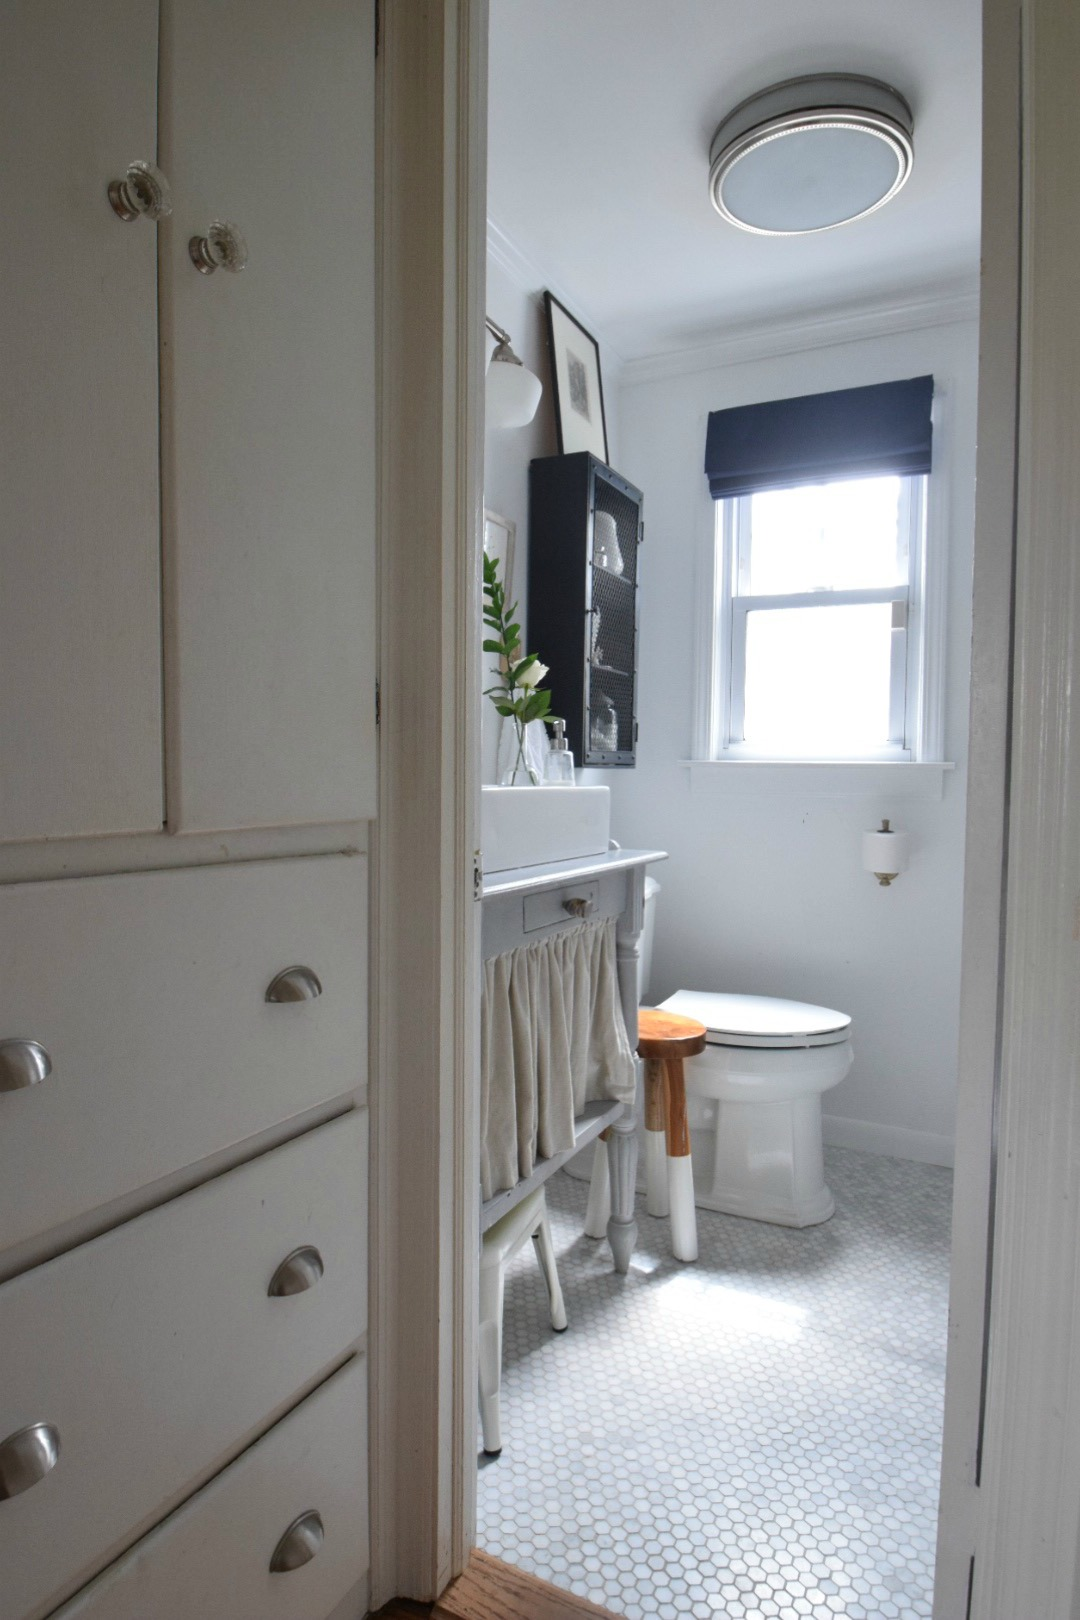 small bathroom ideas and solutions in our tiny cape nesting with i have some small bathroom ideas for you